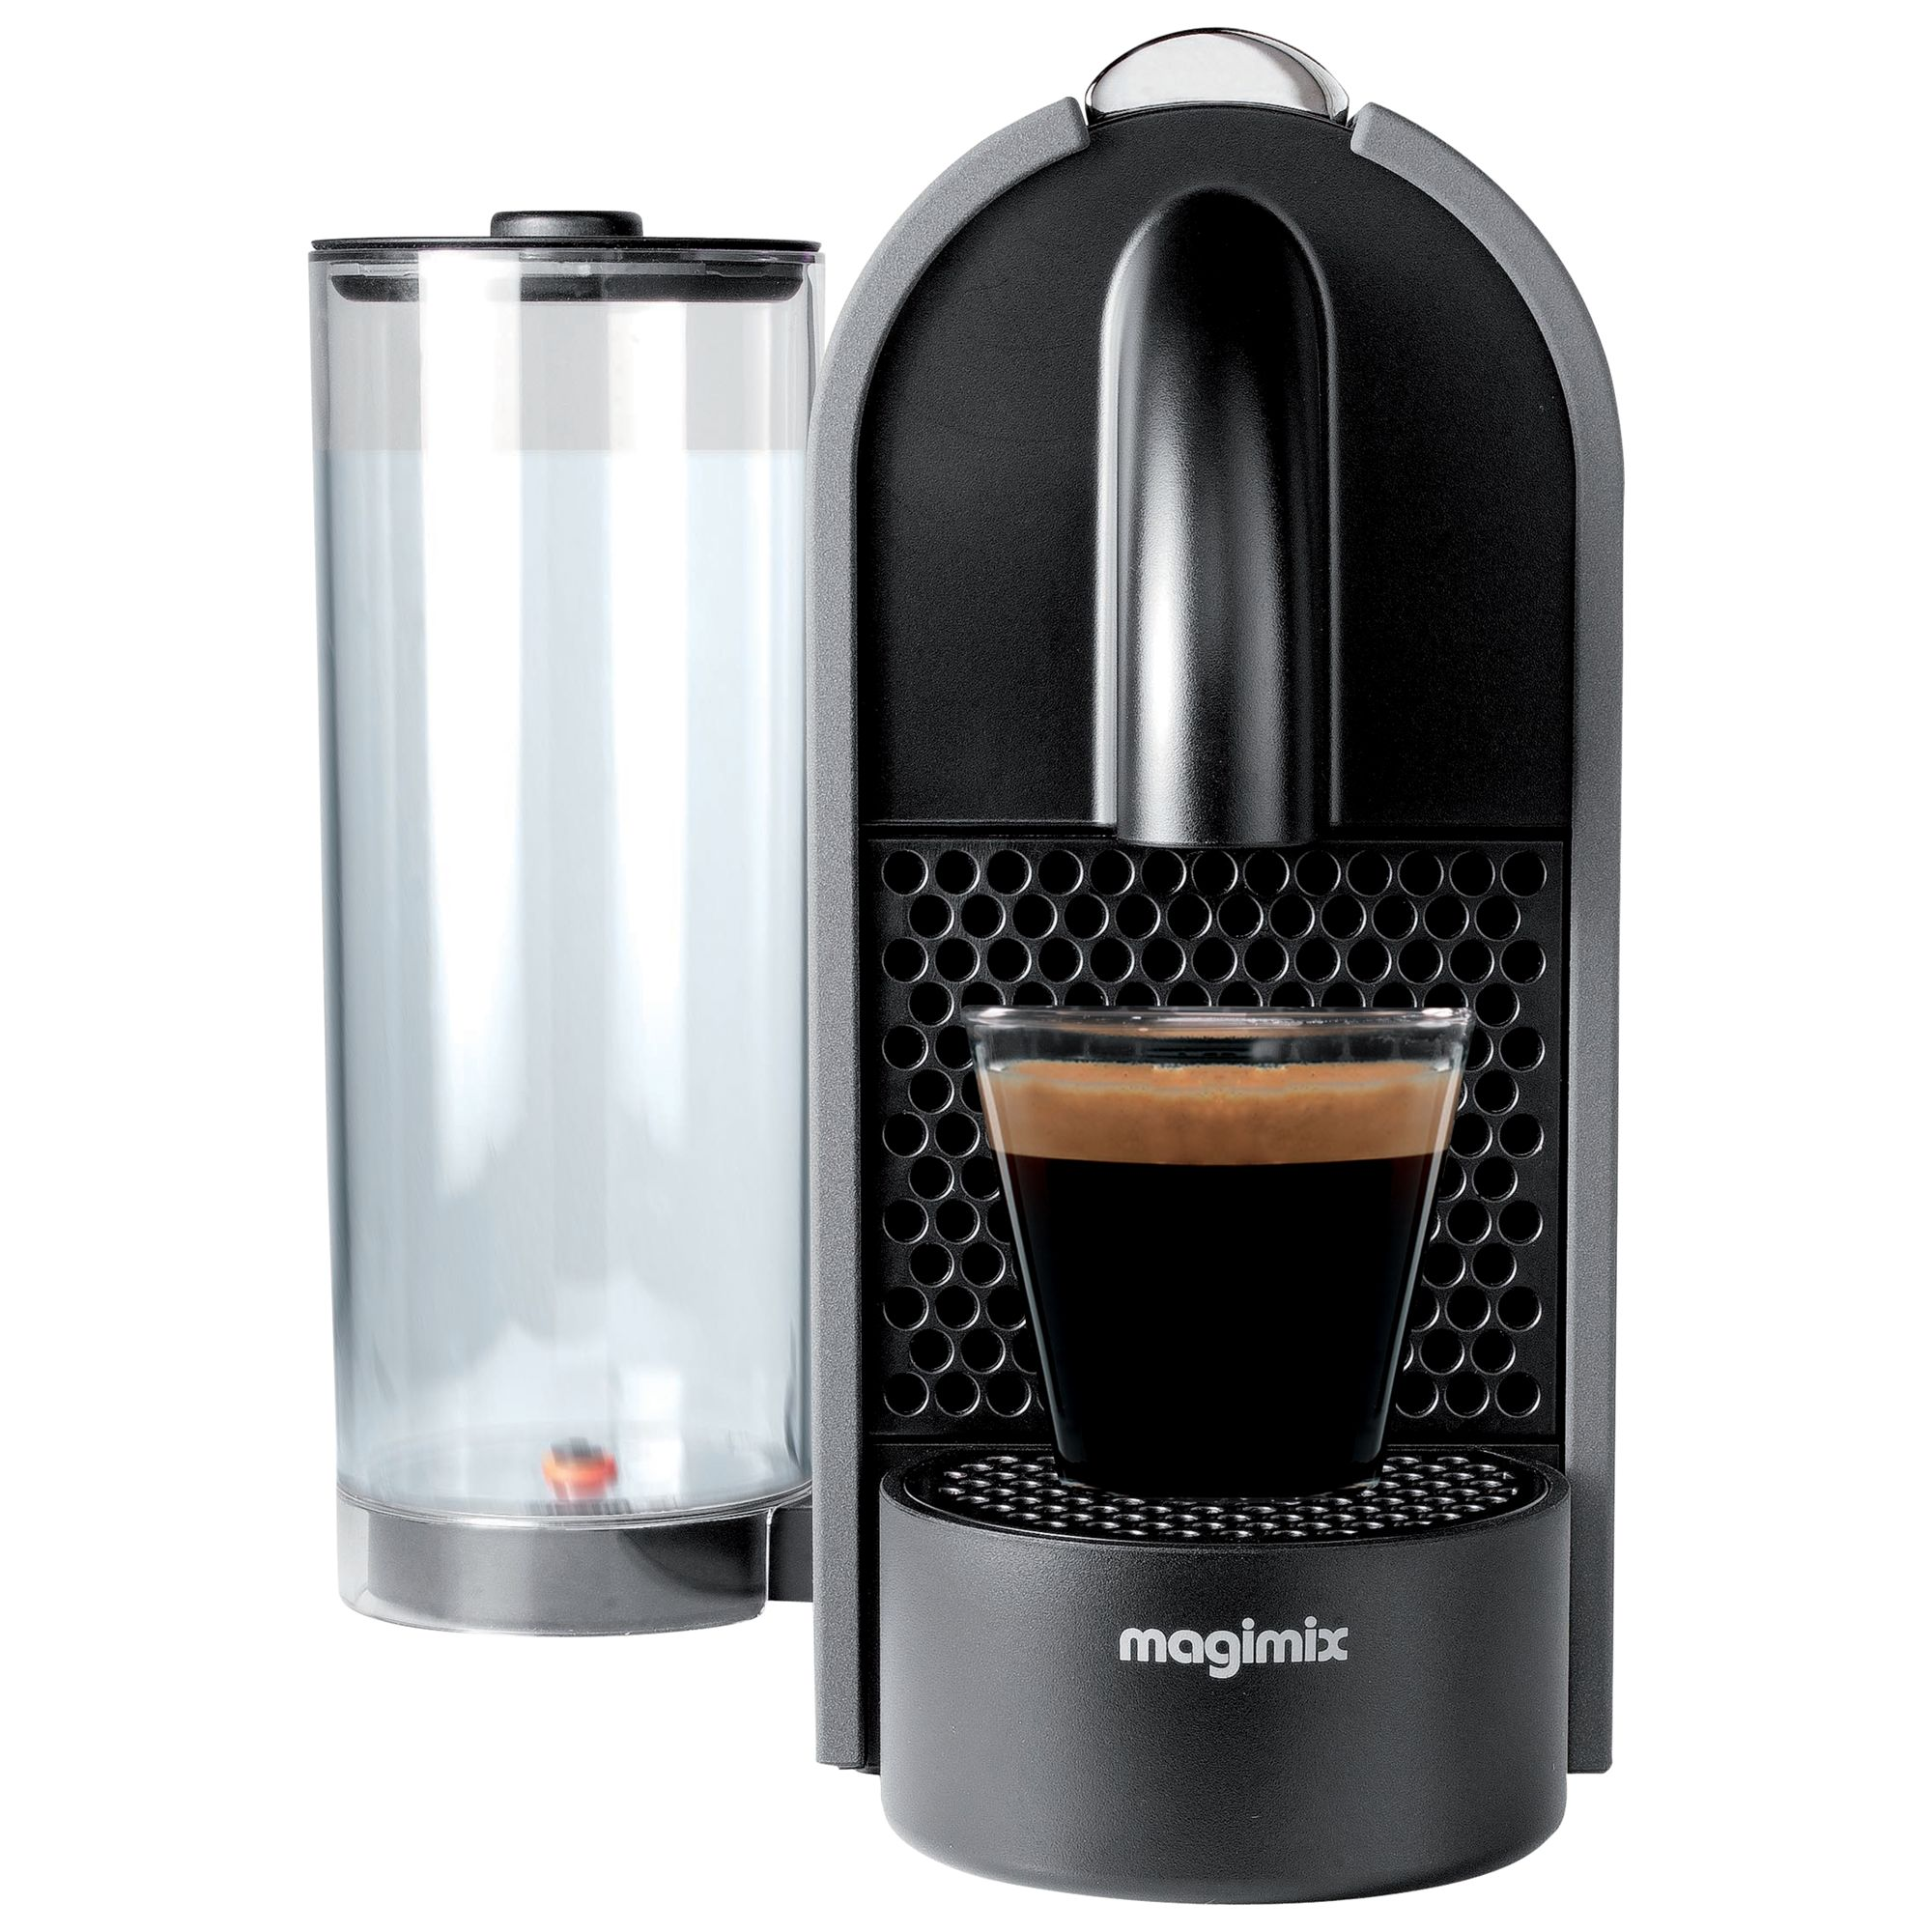 Magimix 643487 Coffee Maker Compare prices, view price  -> Nespresso John Lewis